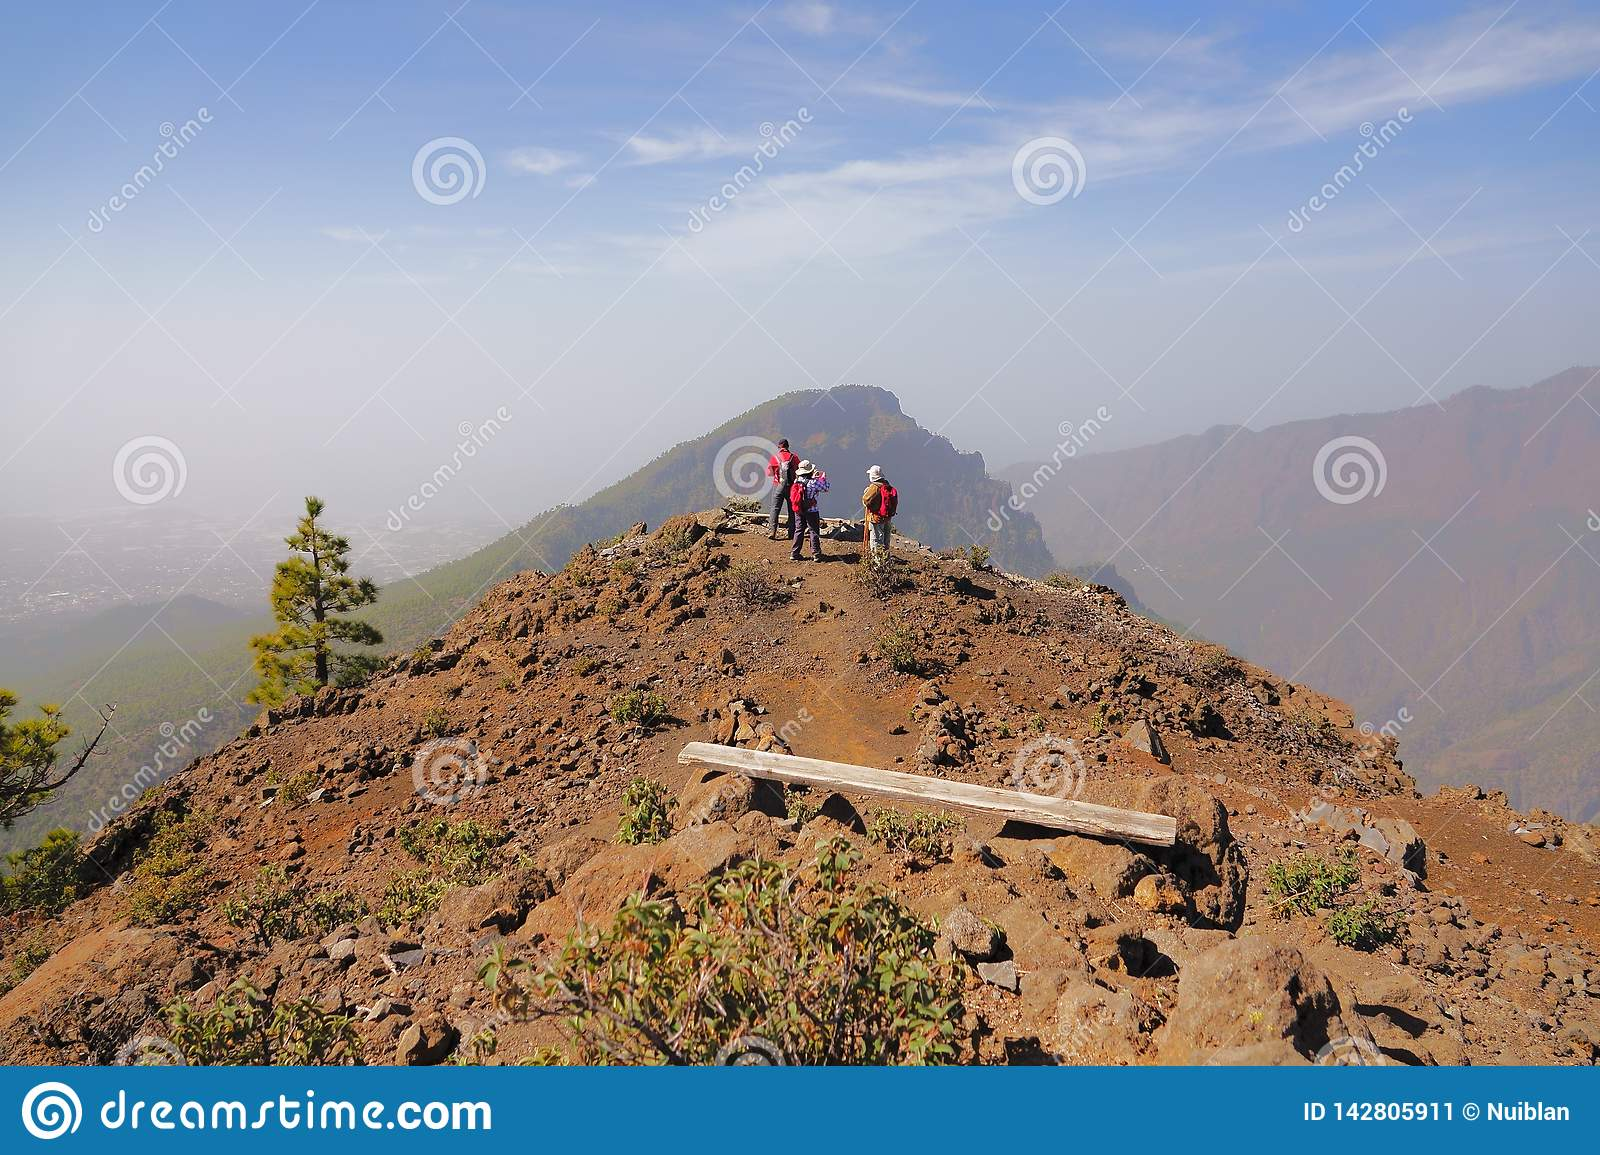 Group of mountaineers on top of a mountain